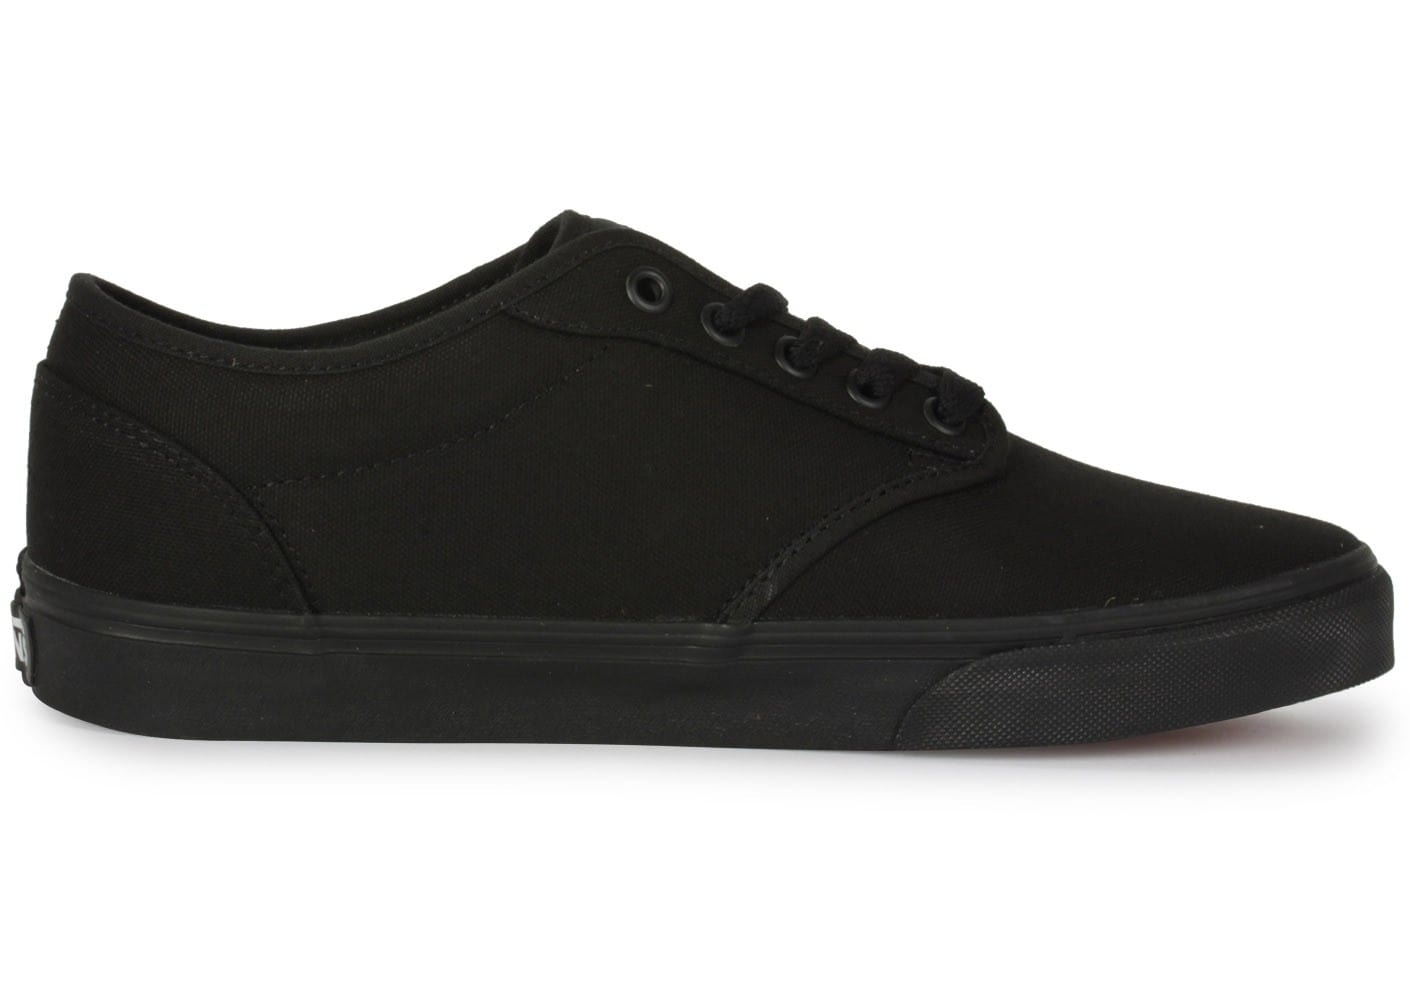 Vans Atwood Toile Noire Chaussures Baskets homme Chausport